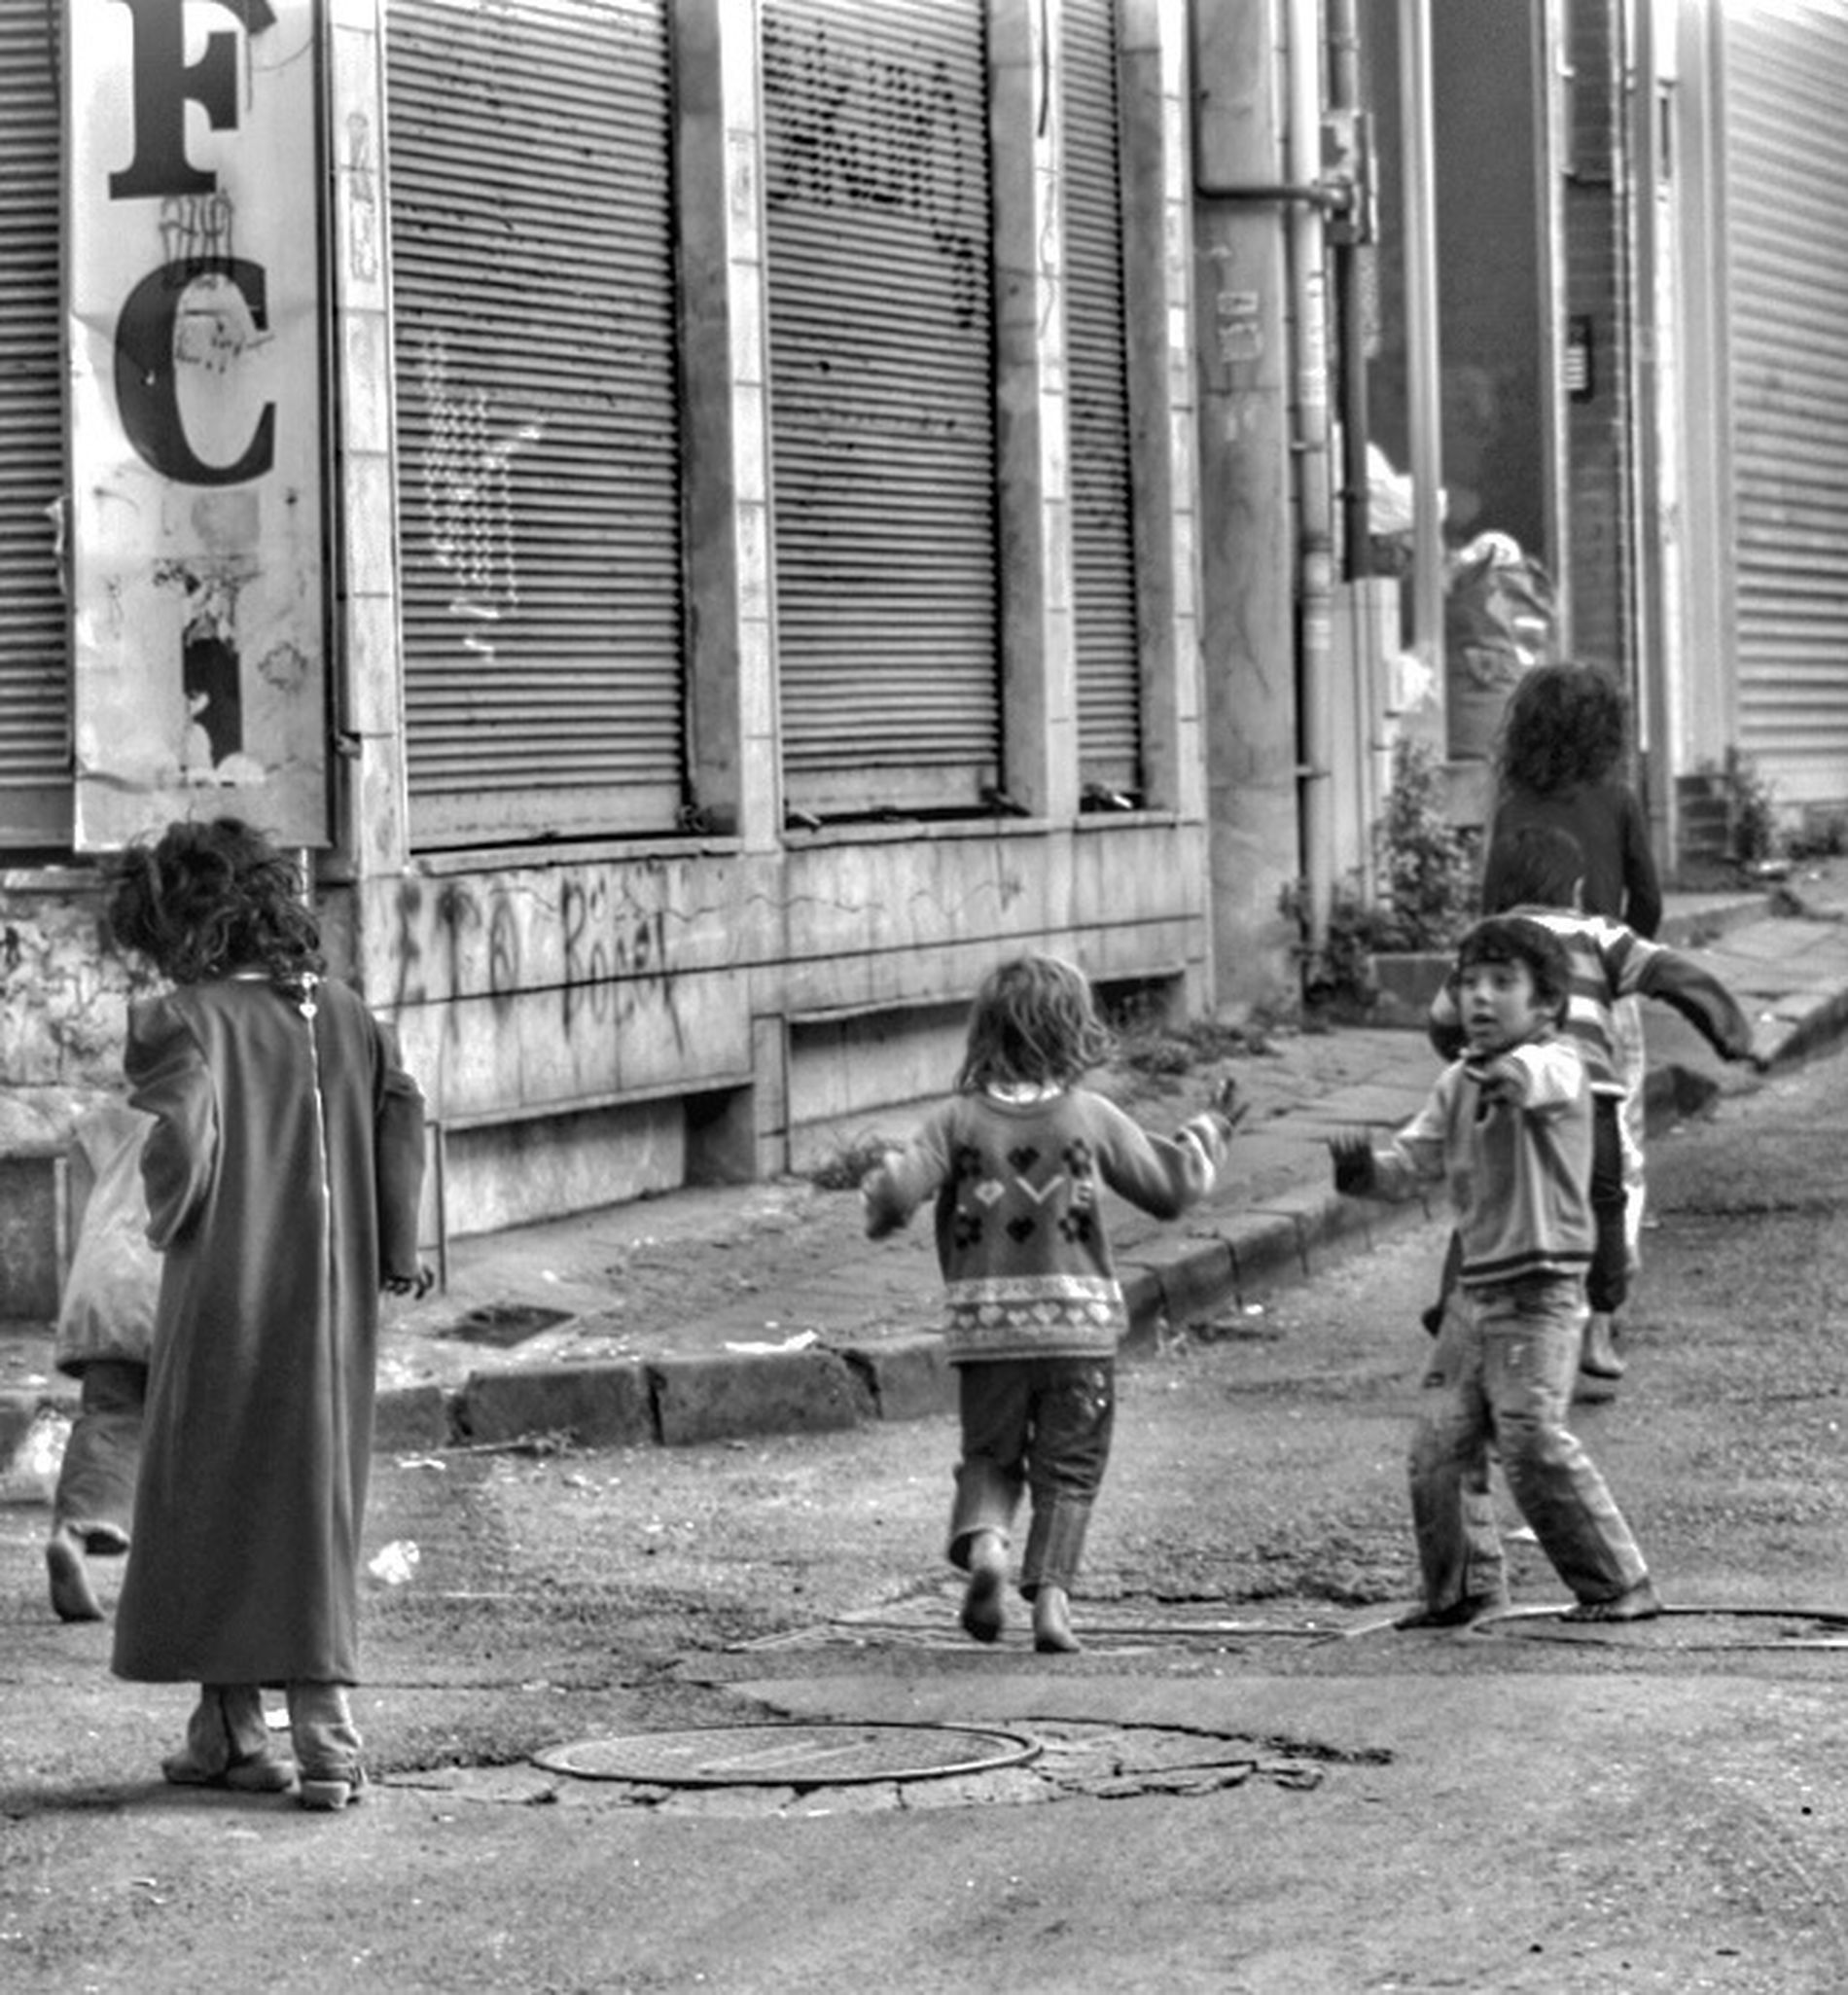 Syran children are playing on a street at Istanbul Syrianchildren Stree Photography Invisiblephotographer